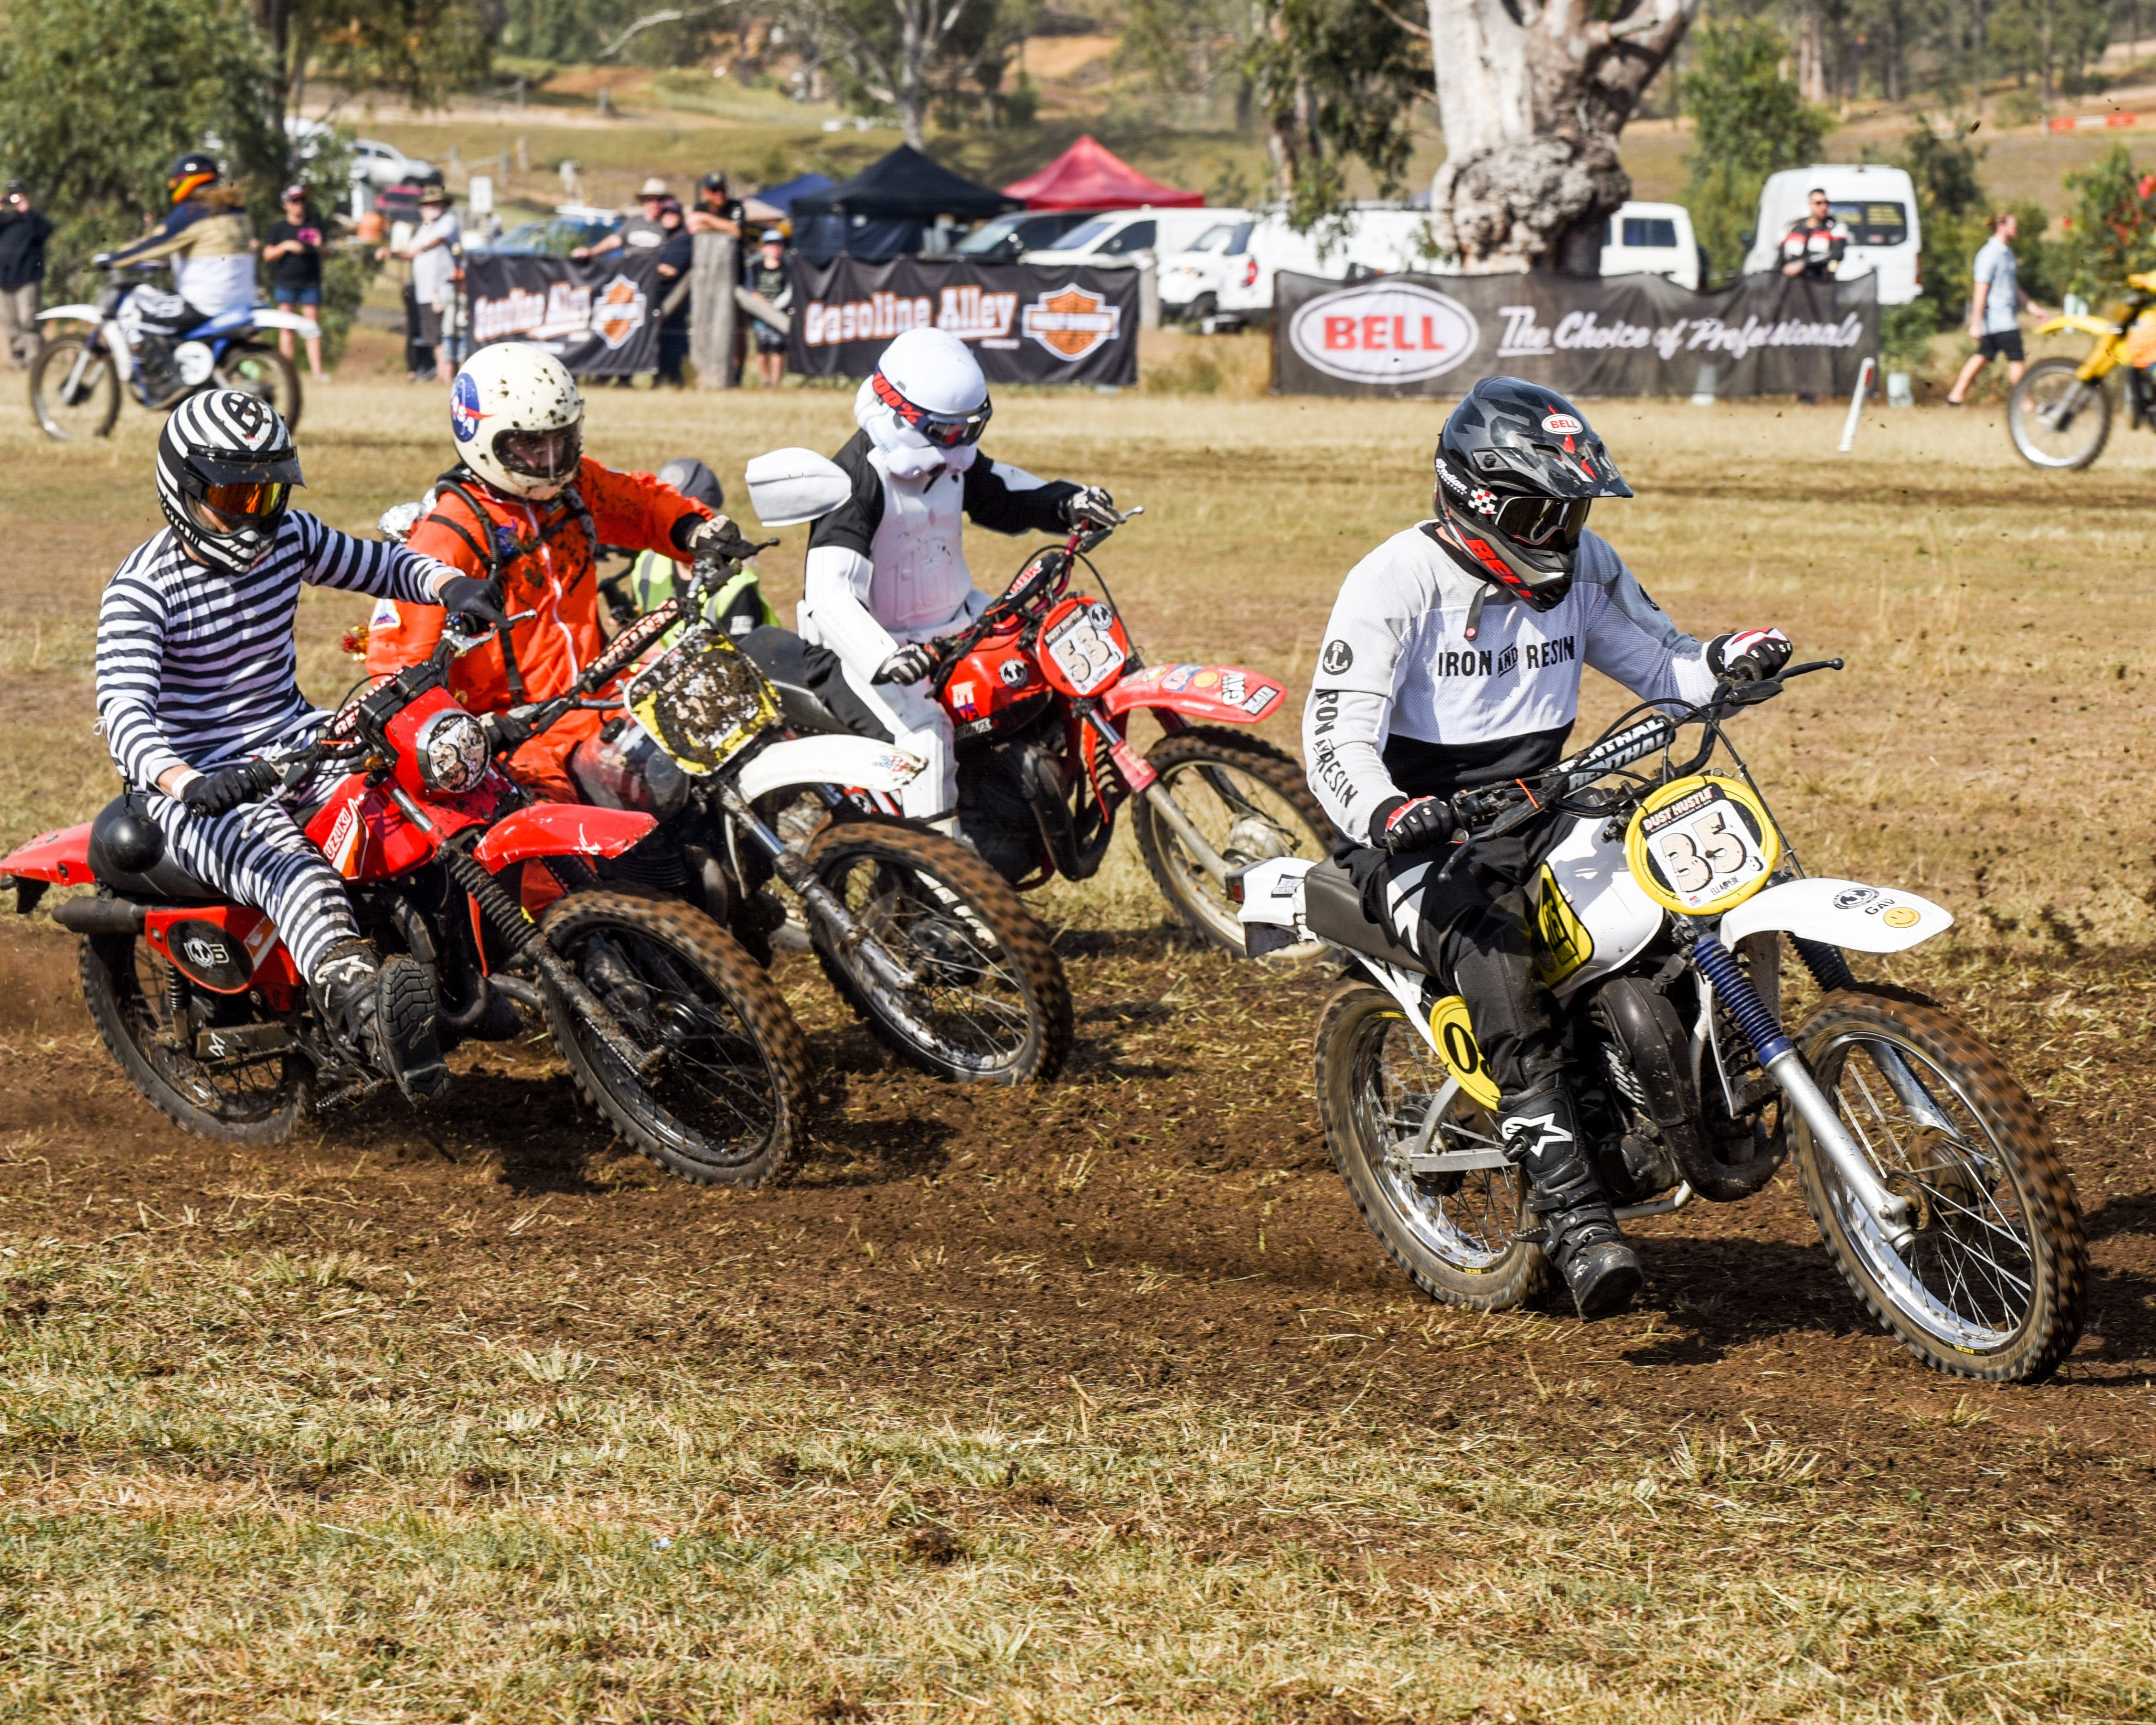 Dust Hustle Queensland Moto Park - Accommodation in Brisbane